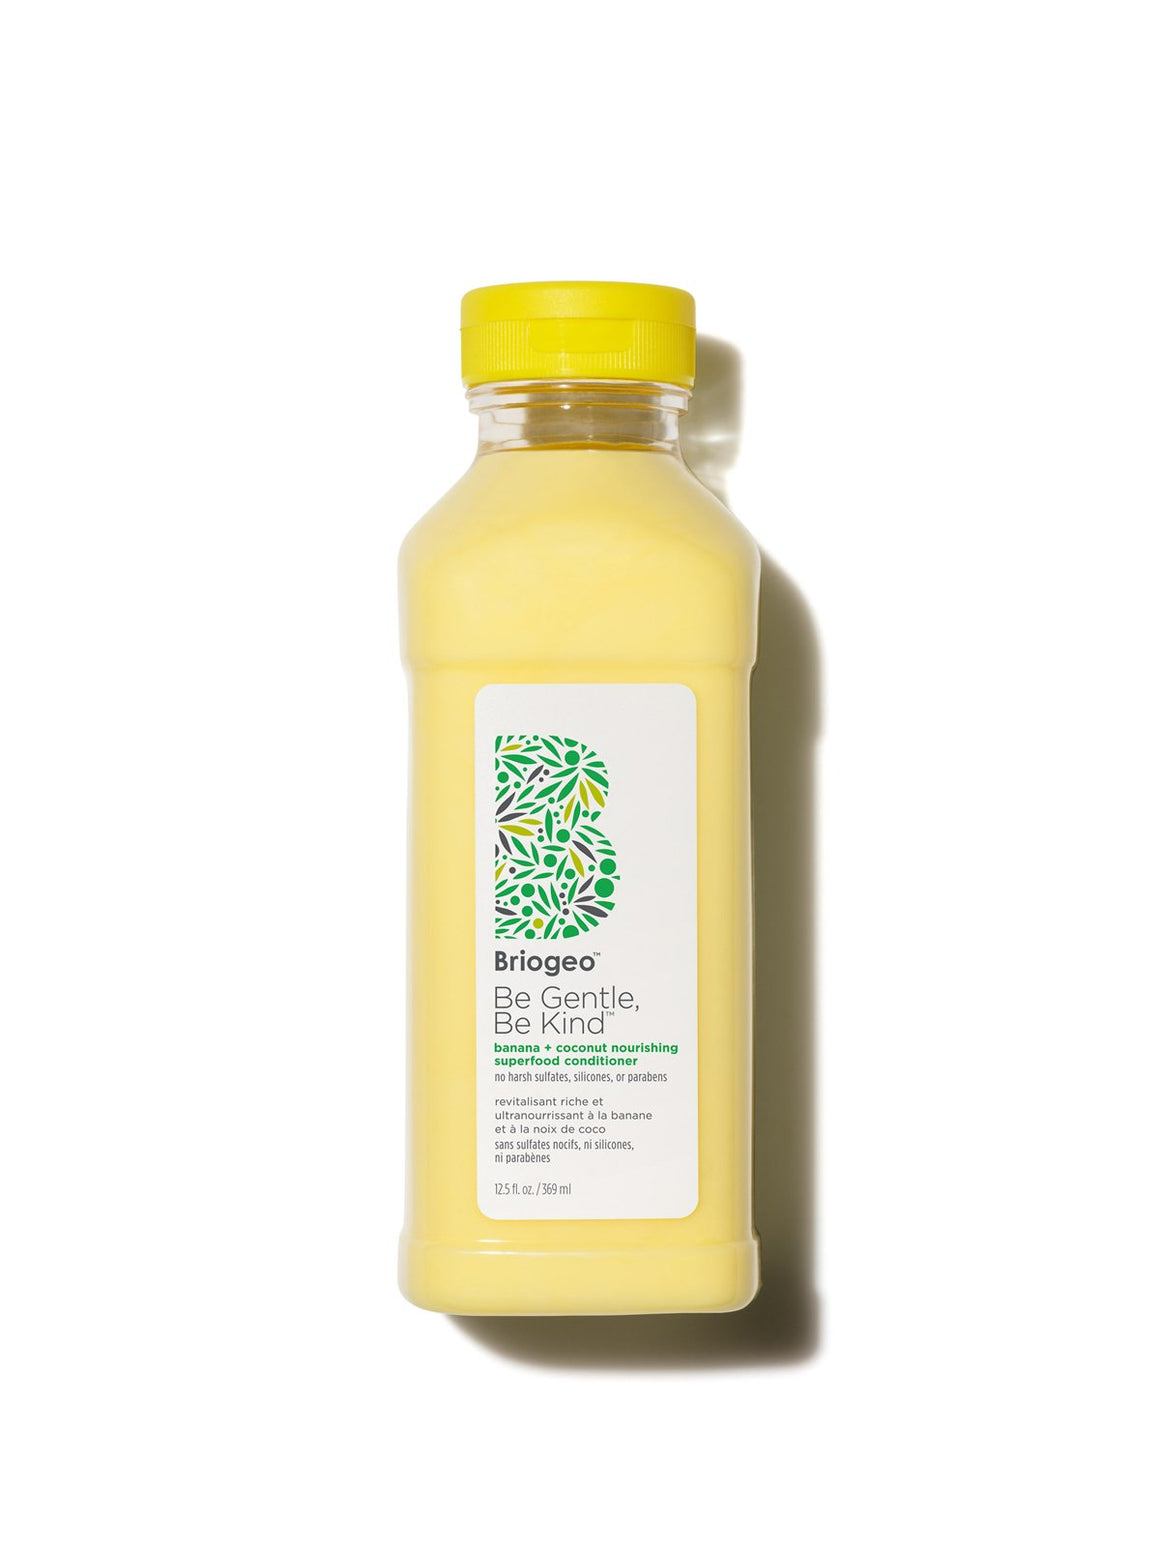 Briogeo Be Gentle Be Kind Banana + Coconut Superfood Conditioner